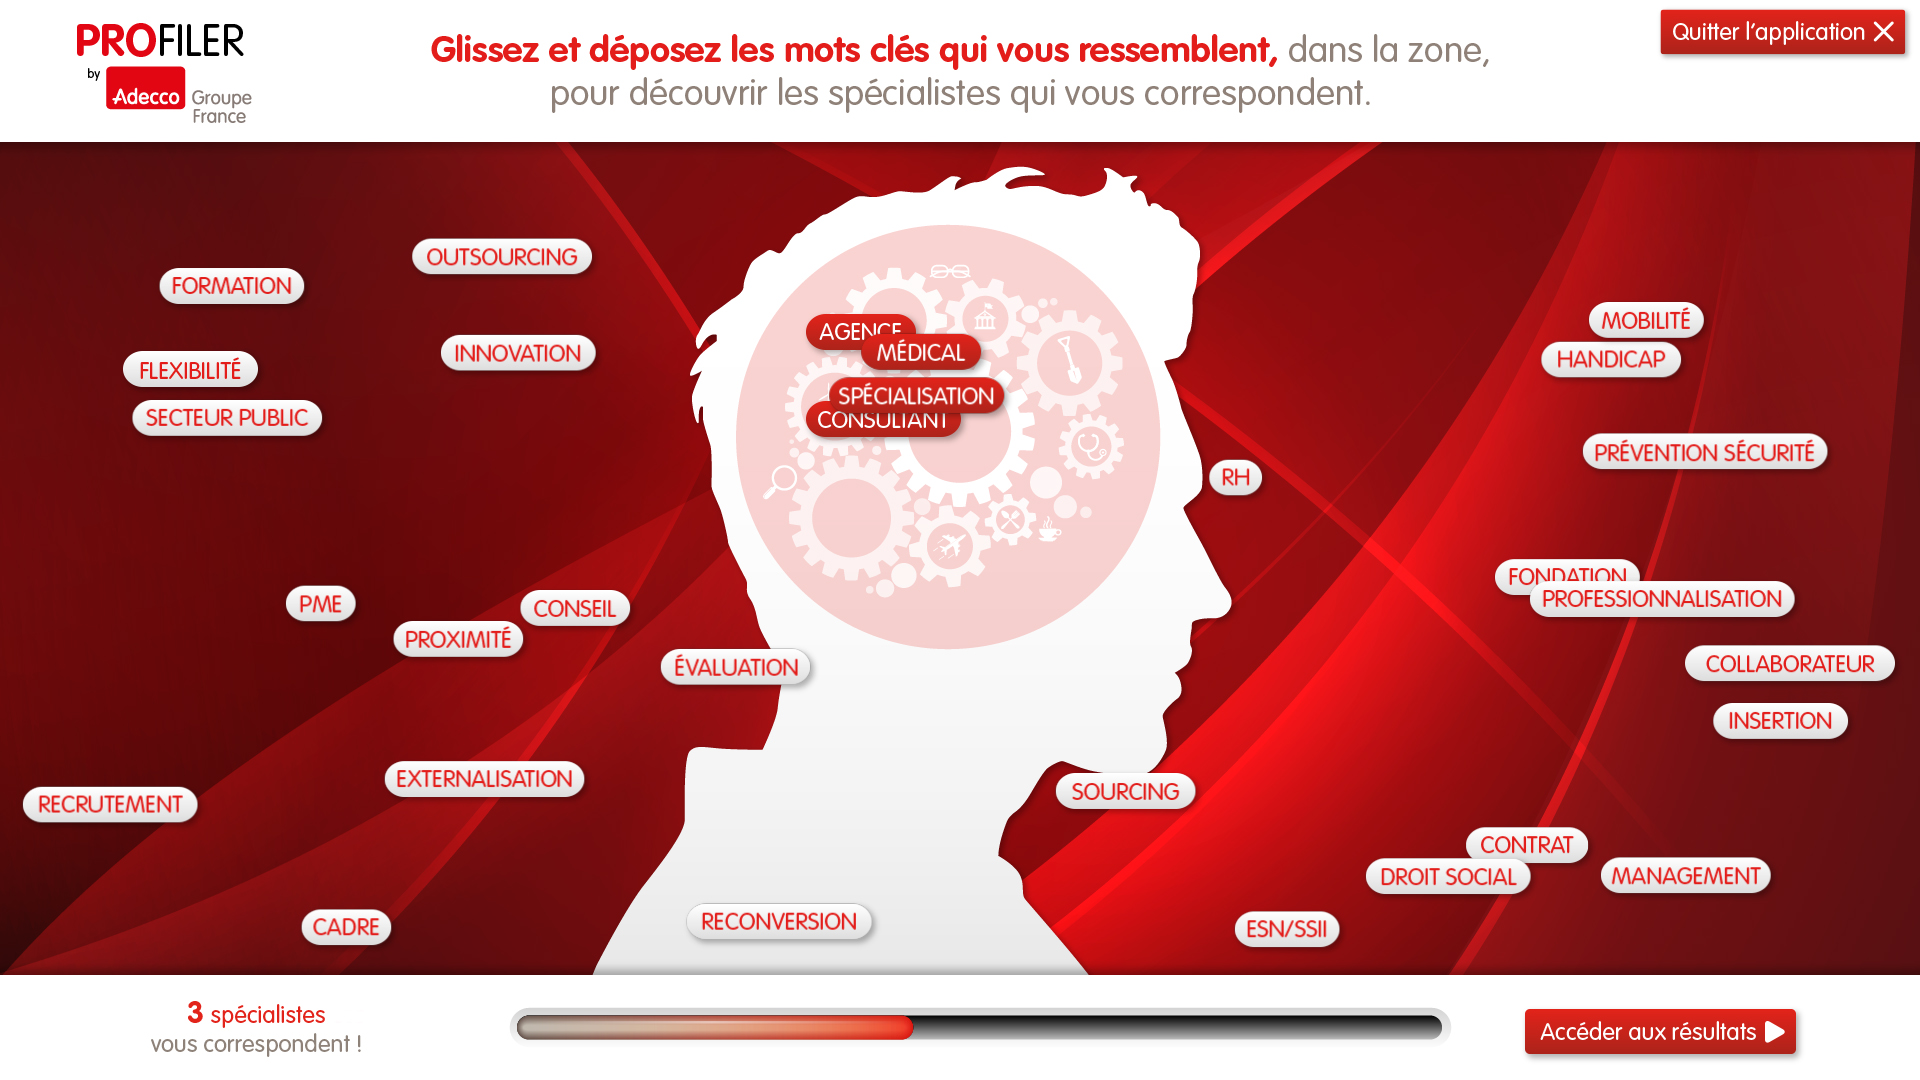 Etude De Cas Application Tactile Digilor Et Adecco